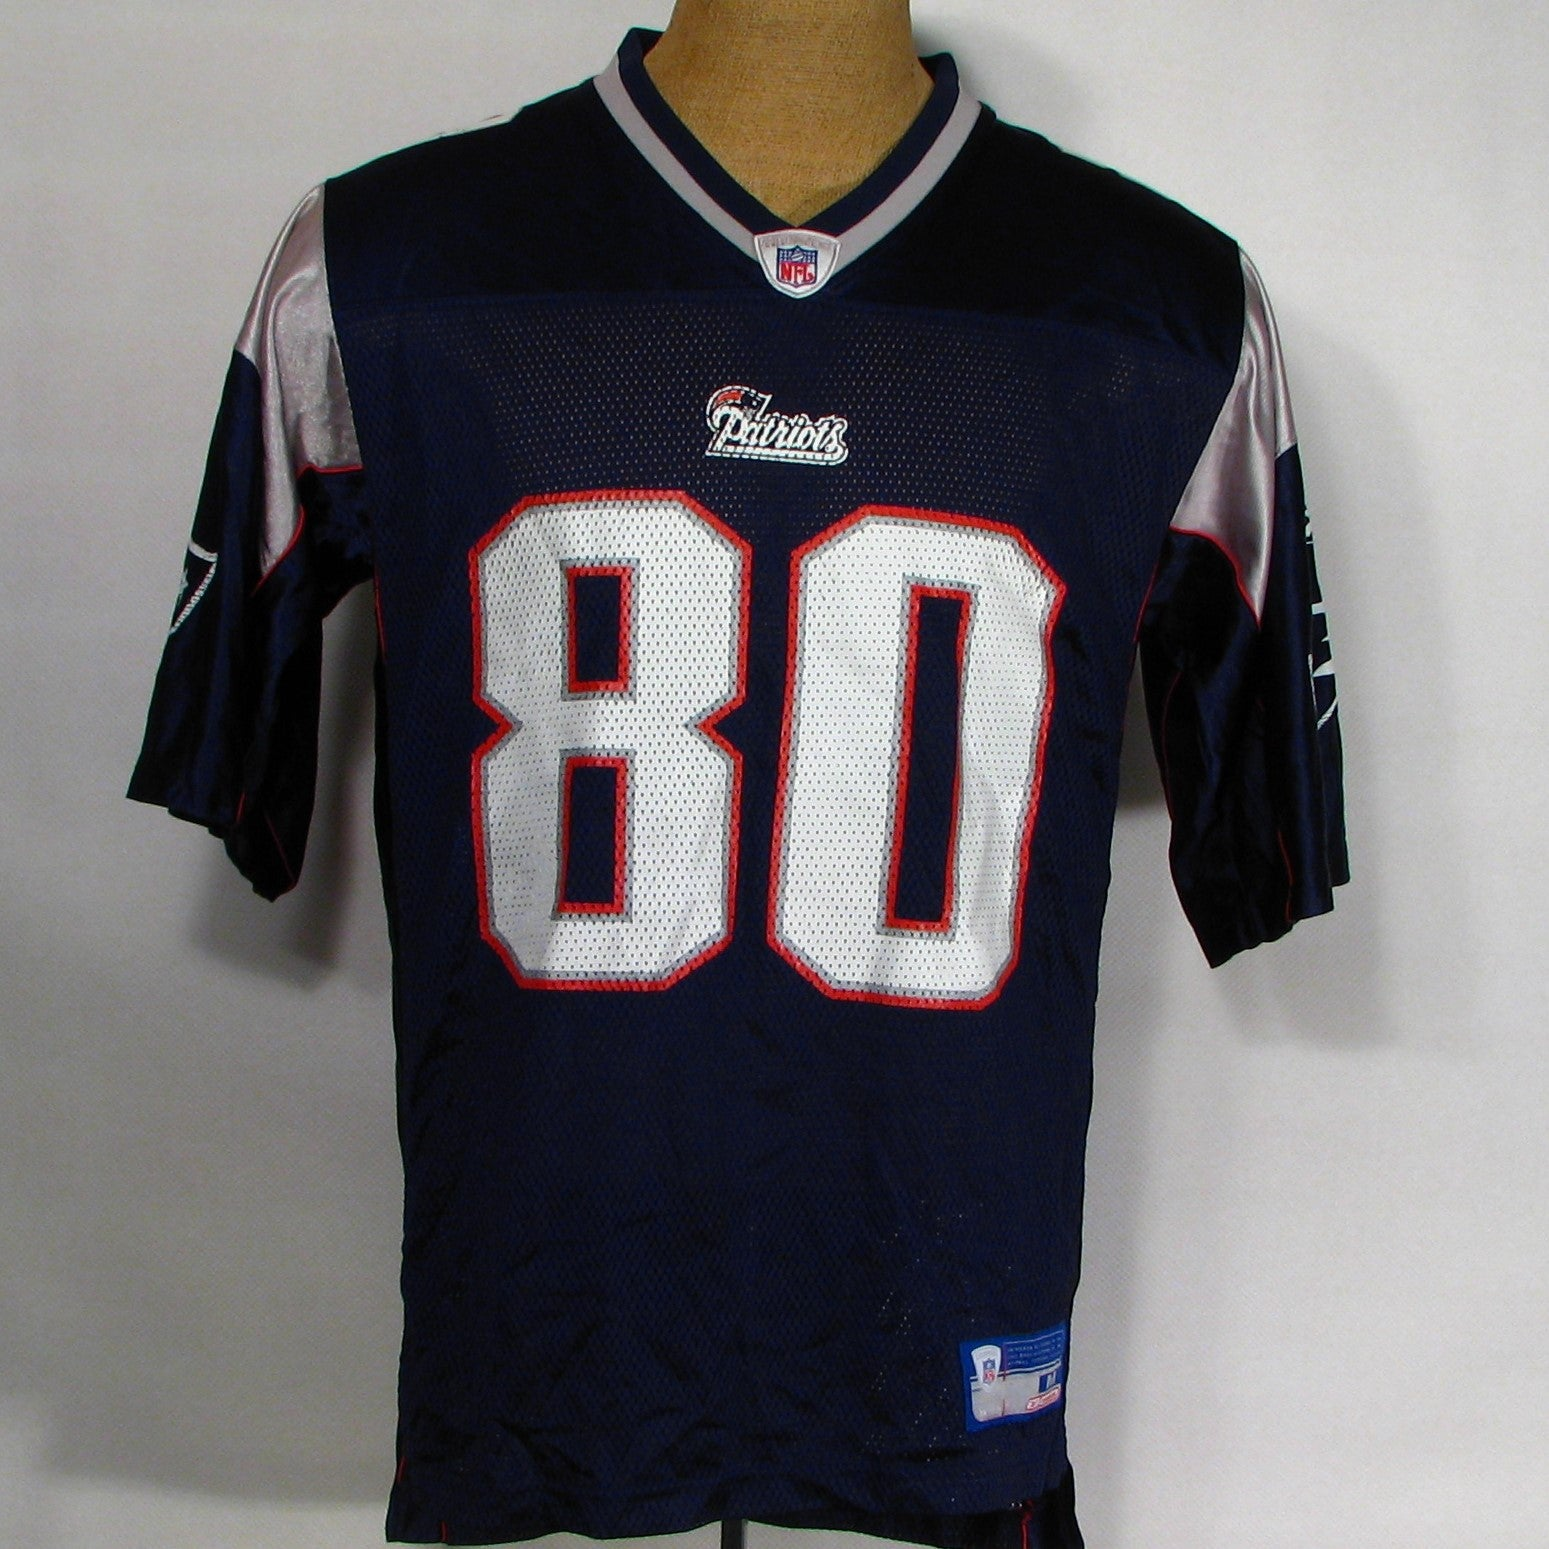 New England Patriots Brown # 80 Jersey